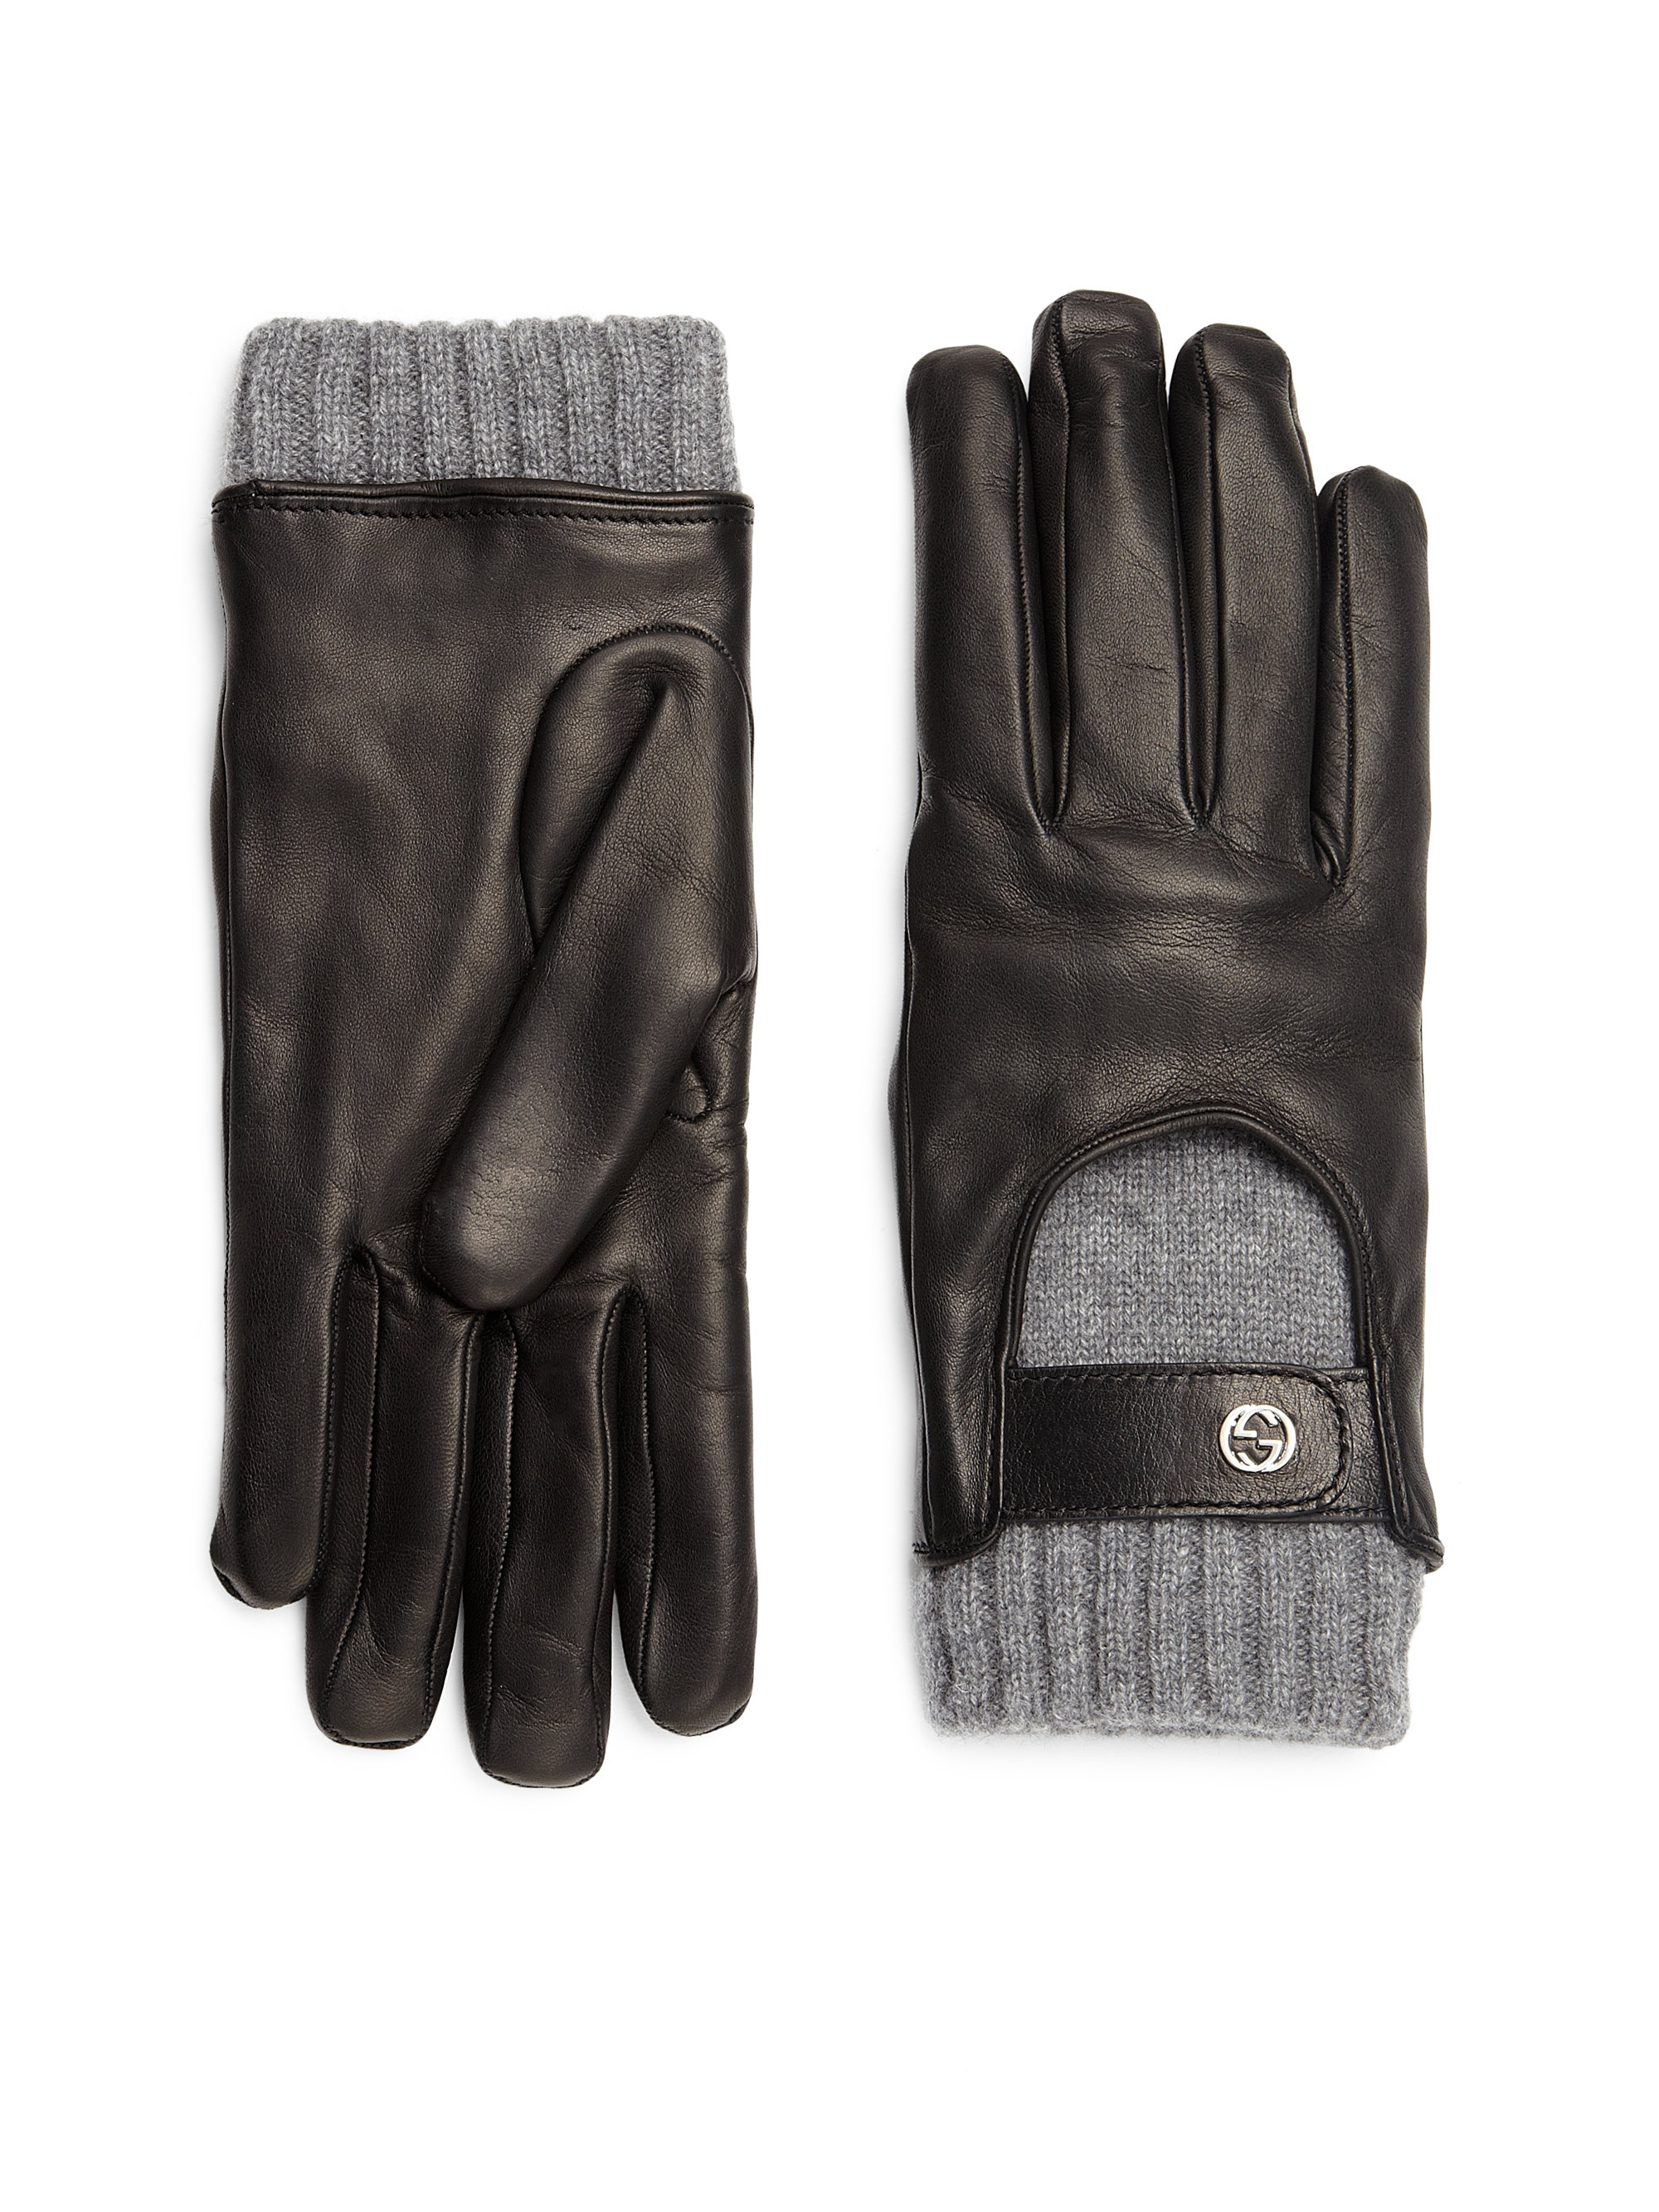 Leather driving gloves bmw -  Mercedes Driving Gloves Gloves Suixtil Clic Stringback Leather